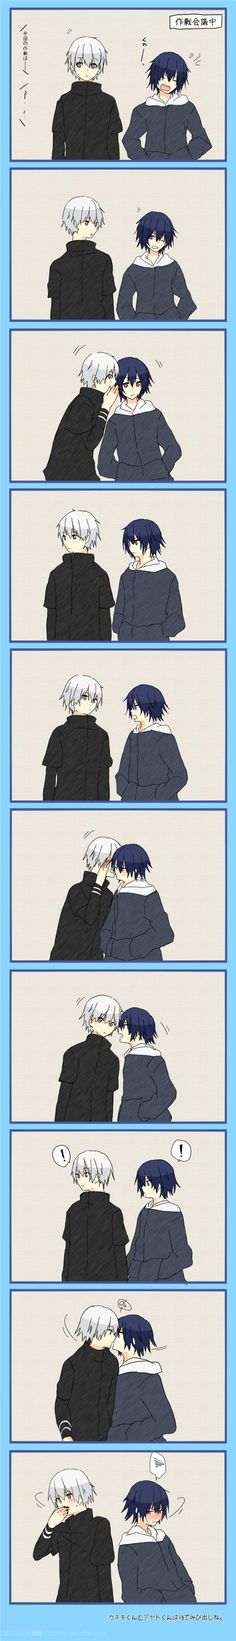 Kaneki x Ayato, don't really ship it but cute